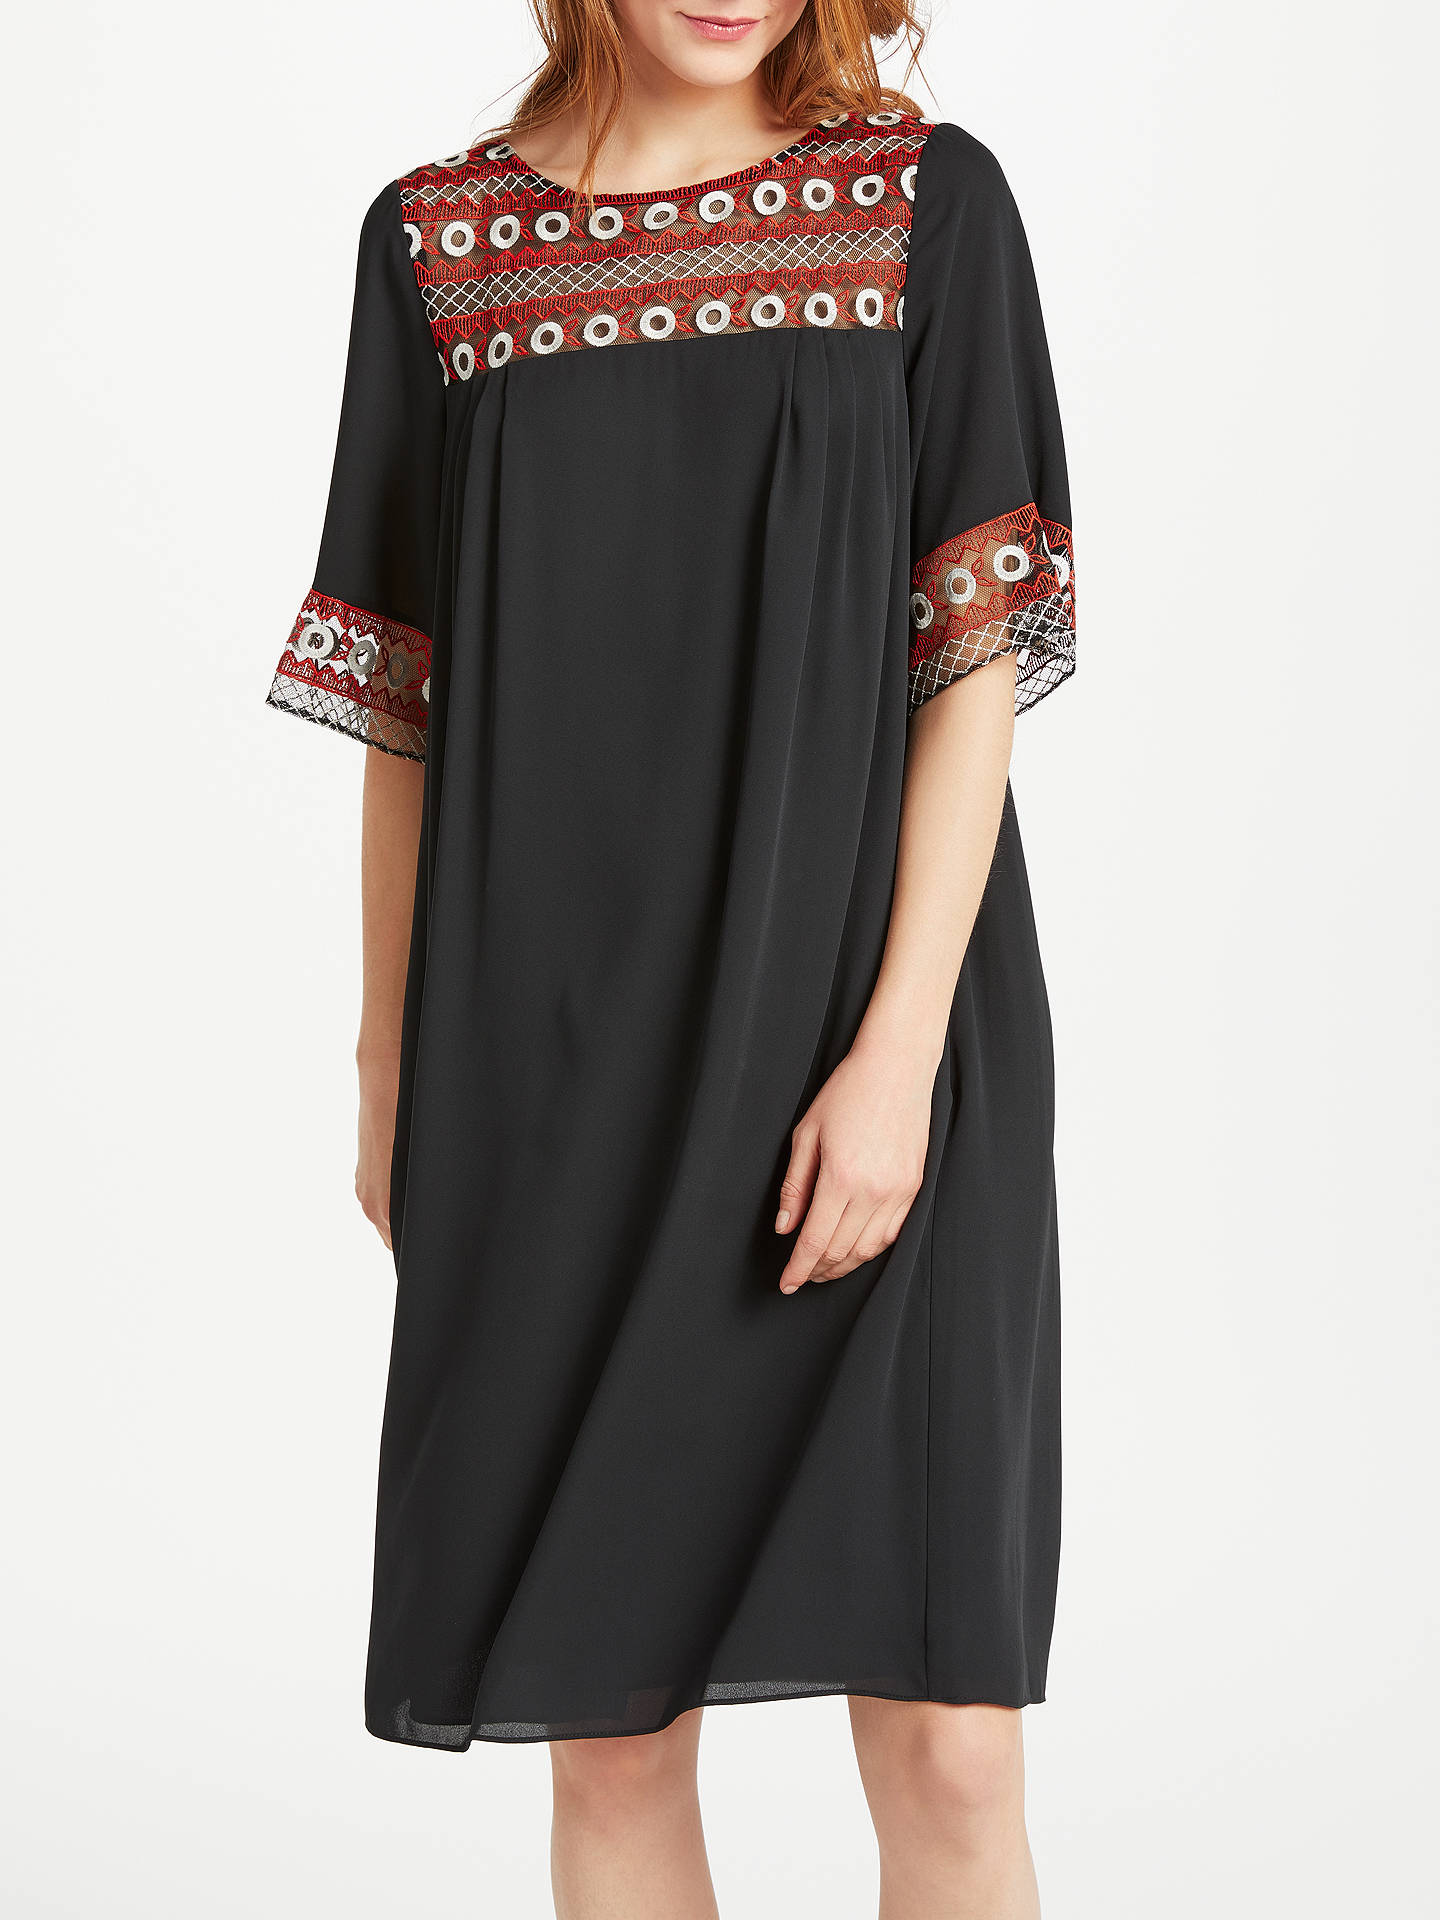 BuySomerset by Alice Temperley Embroidered Circles Tunic Dress 8d55d54d7